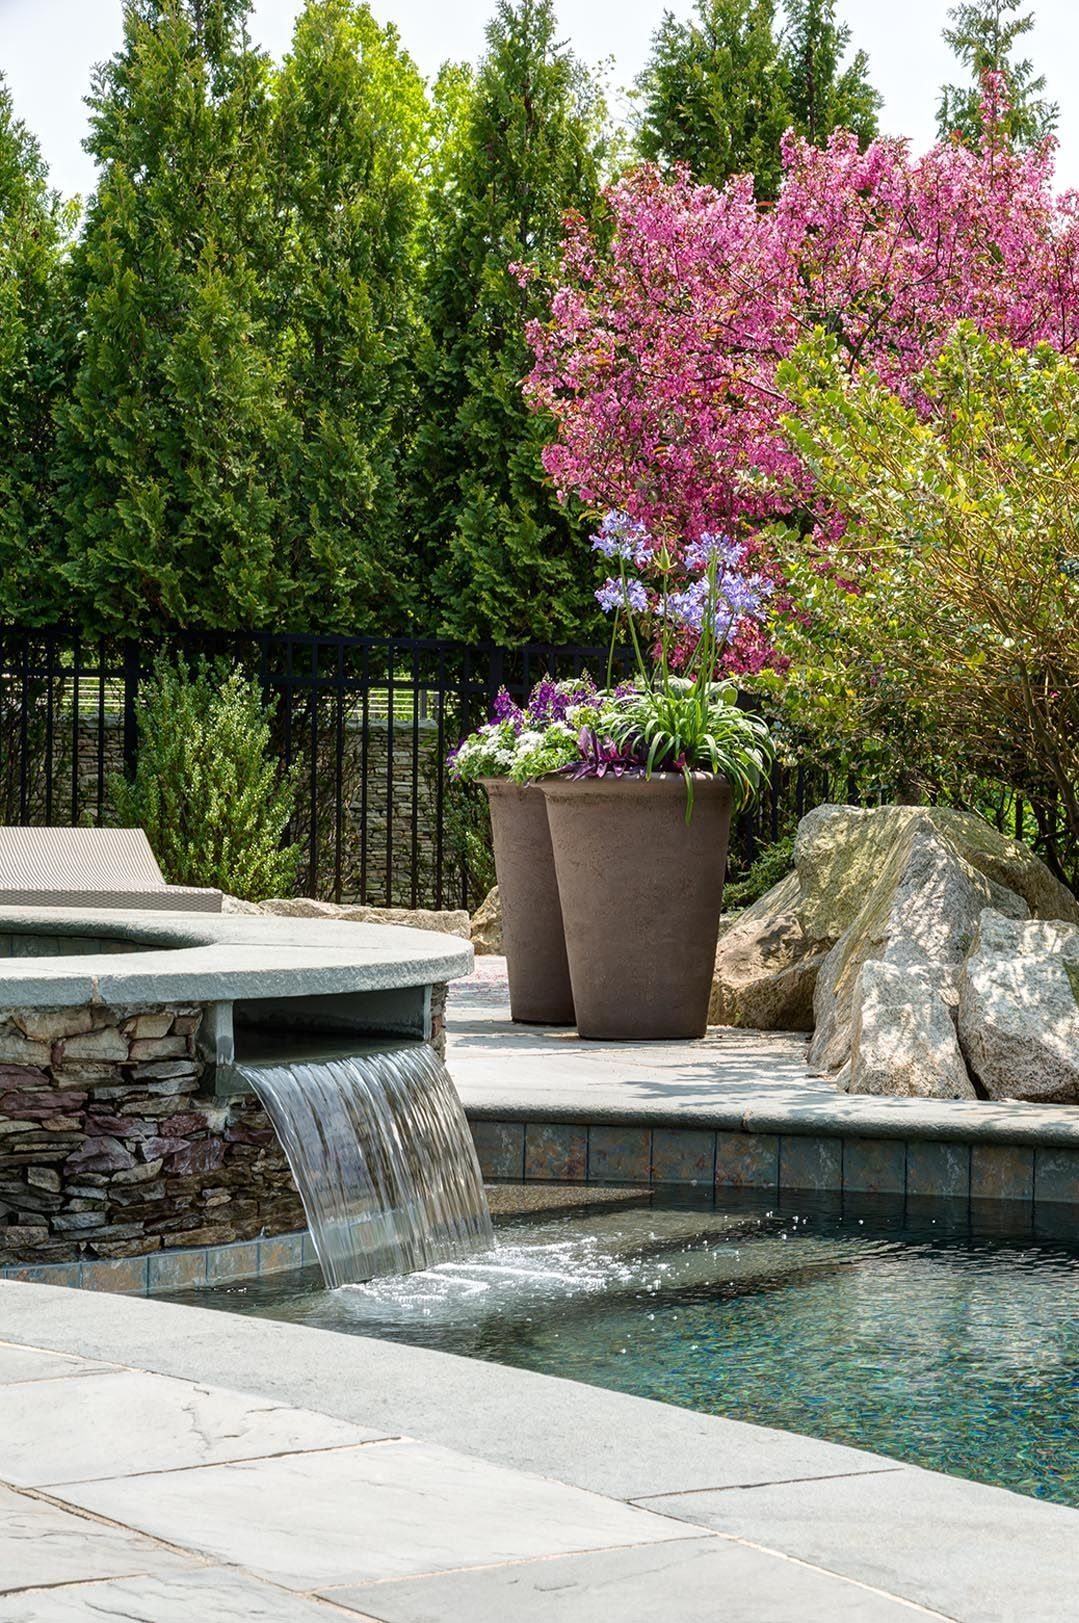 Unexpected Landscape Design Elements Like Putting Greens Water Features Landscaping Backyard Frontyard Prudy